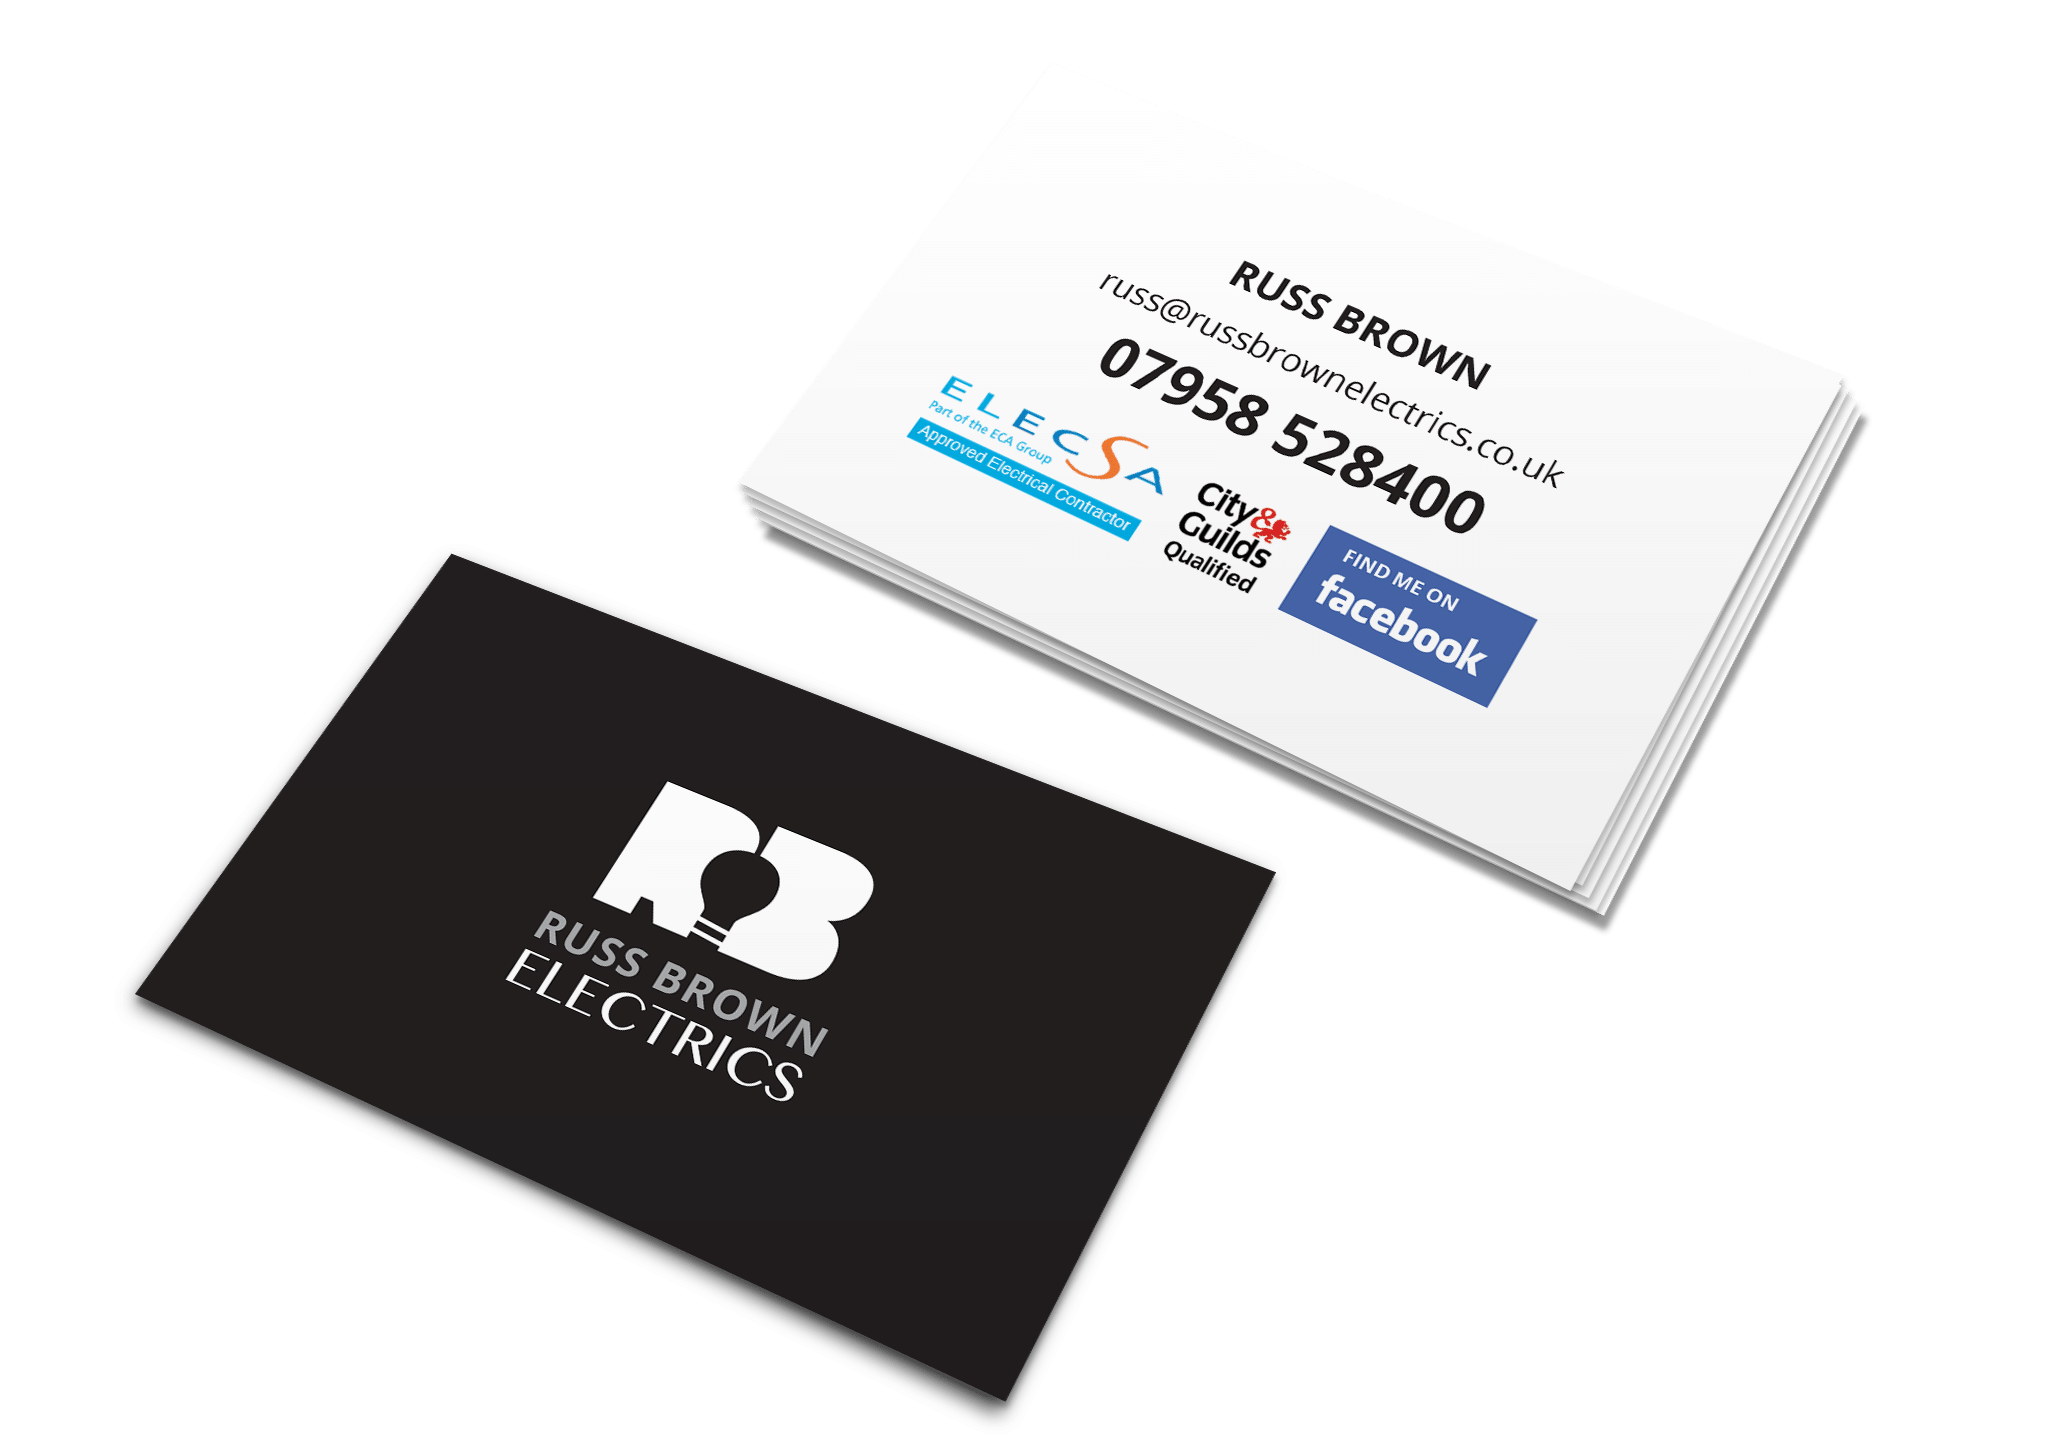 Facebook logo for business card unlimitedgamers f8 business card design print services worcester reheart Choice Image